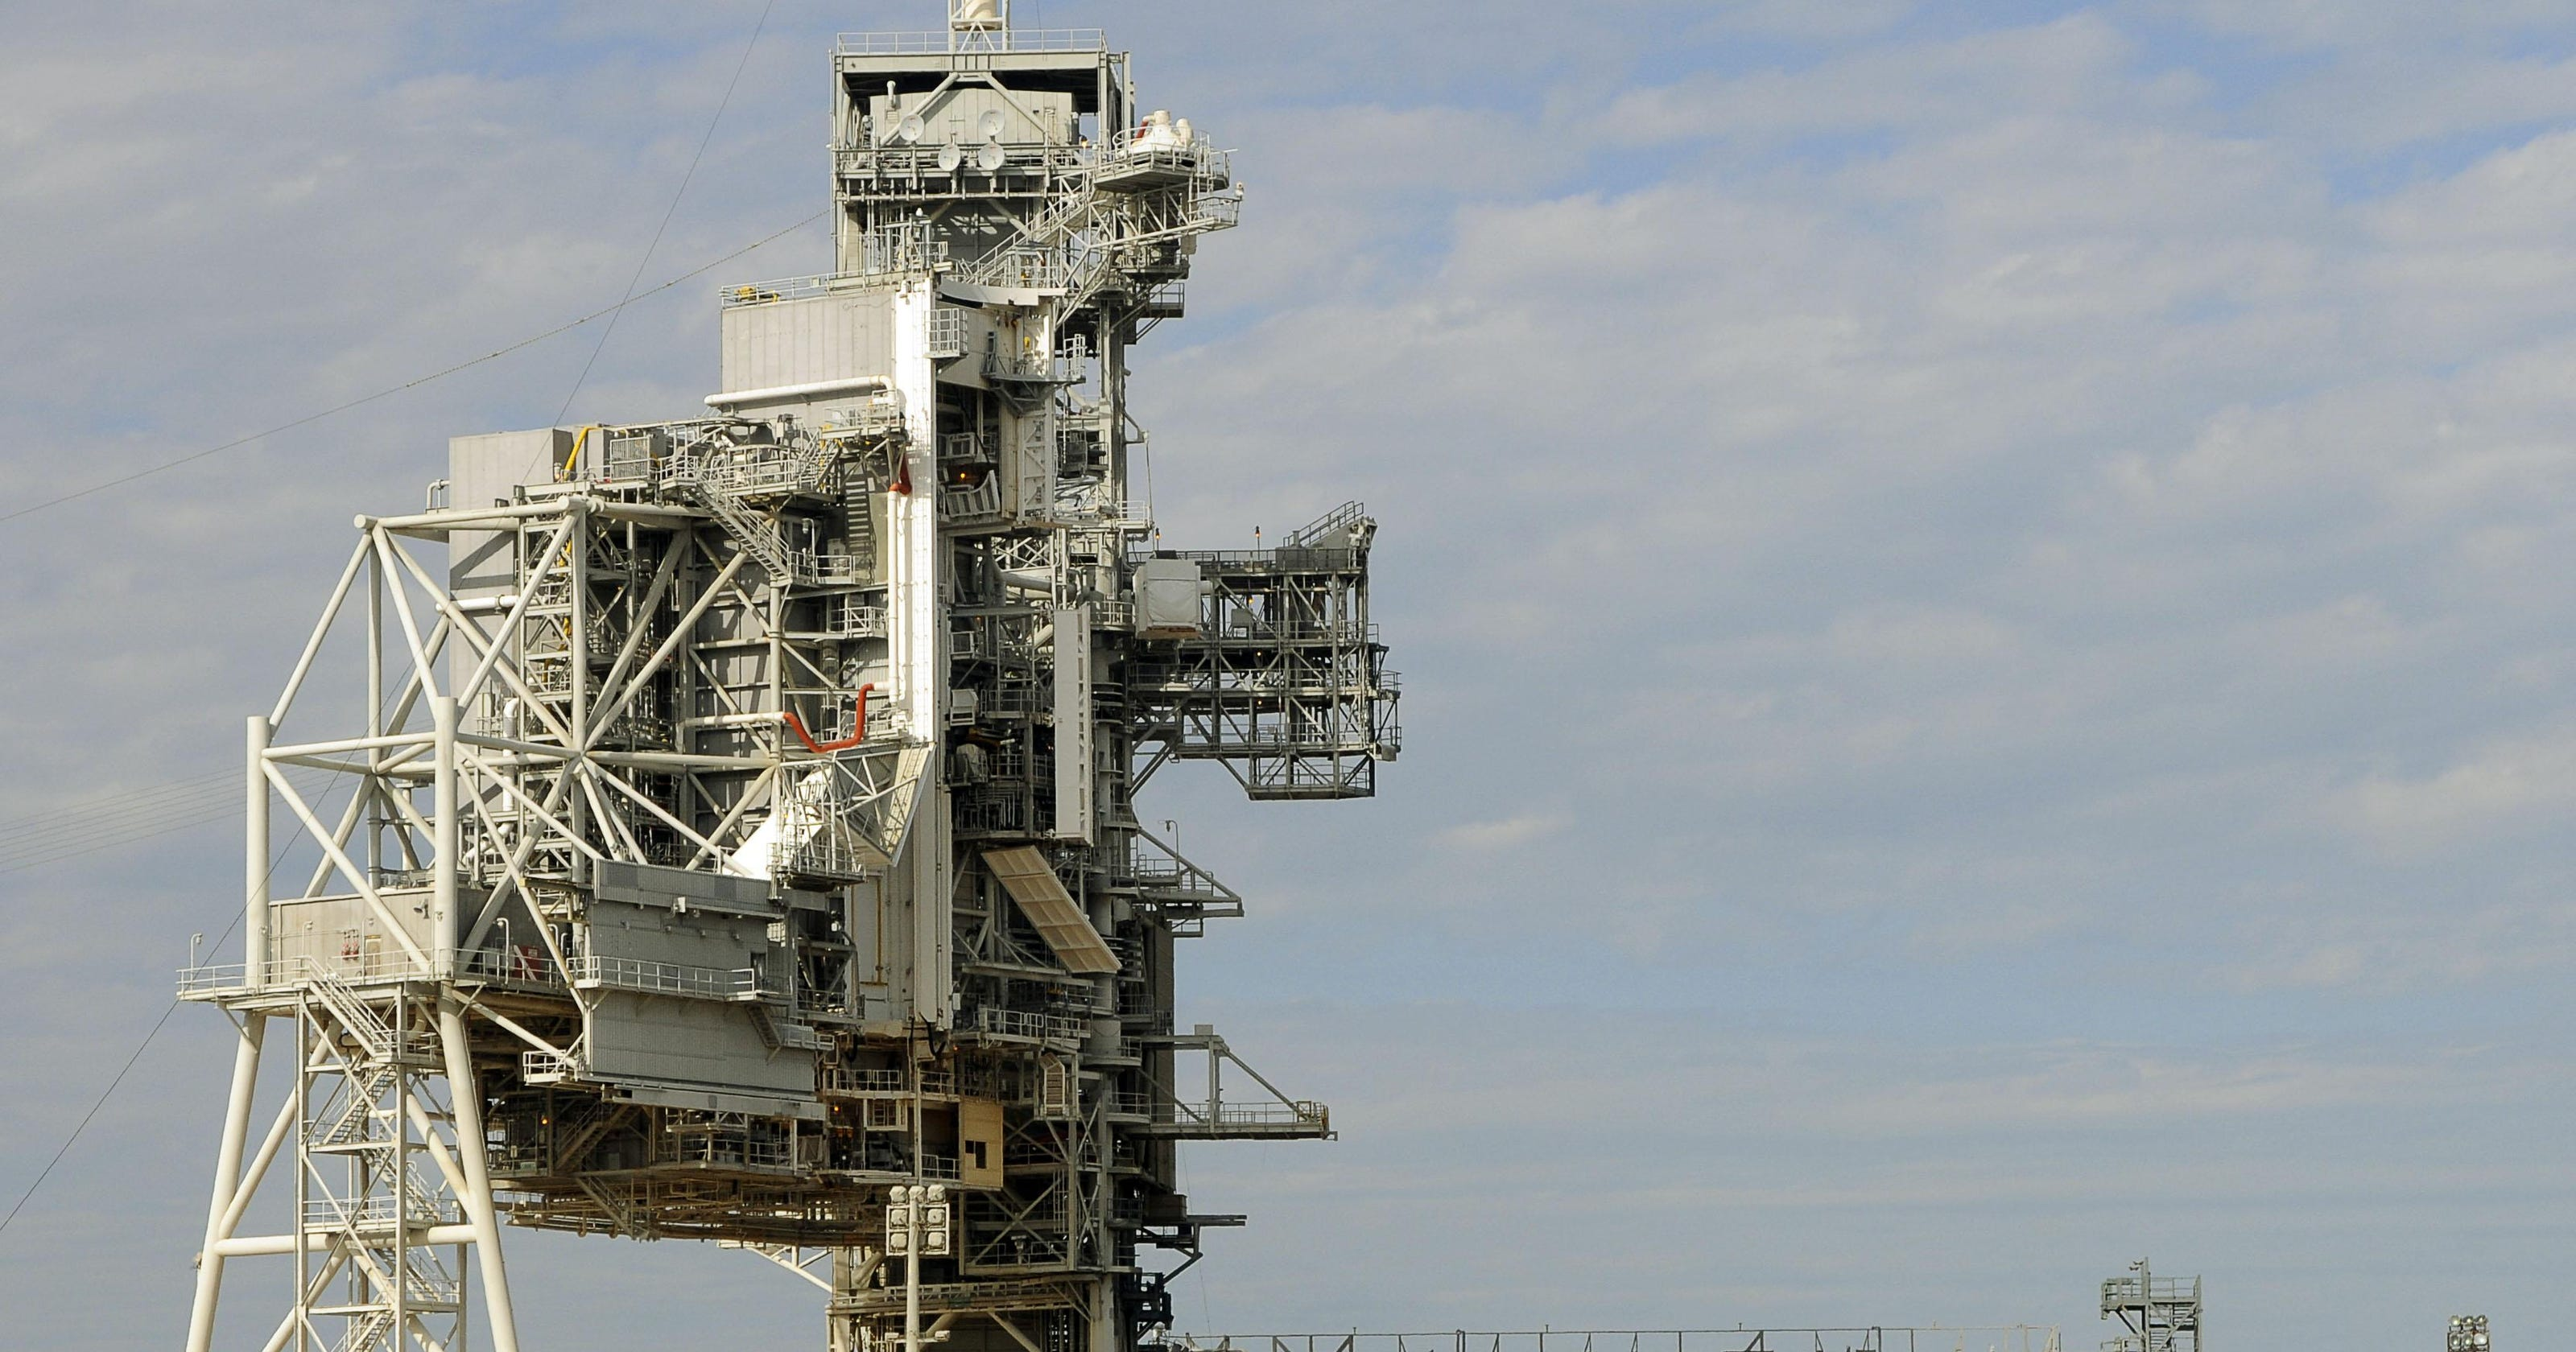 pad 39a launches graph - HD3200×1680